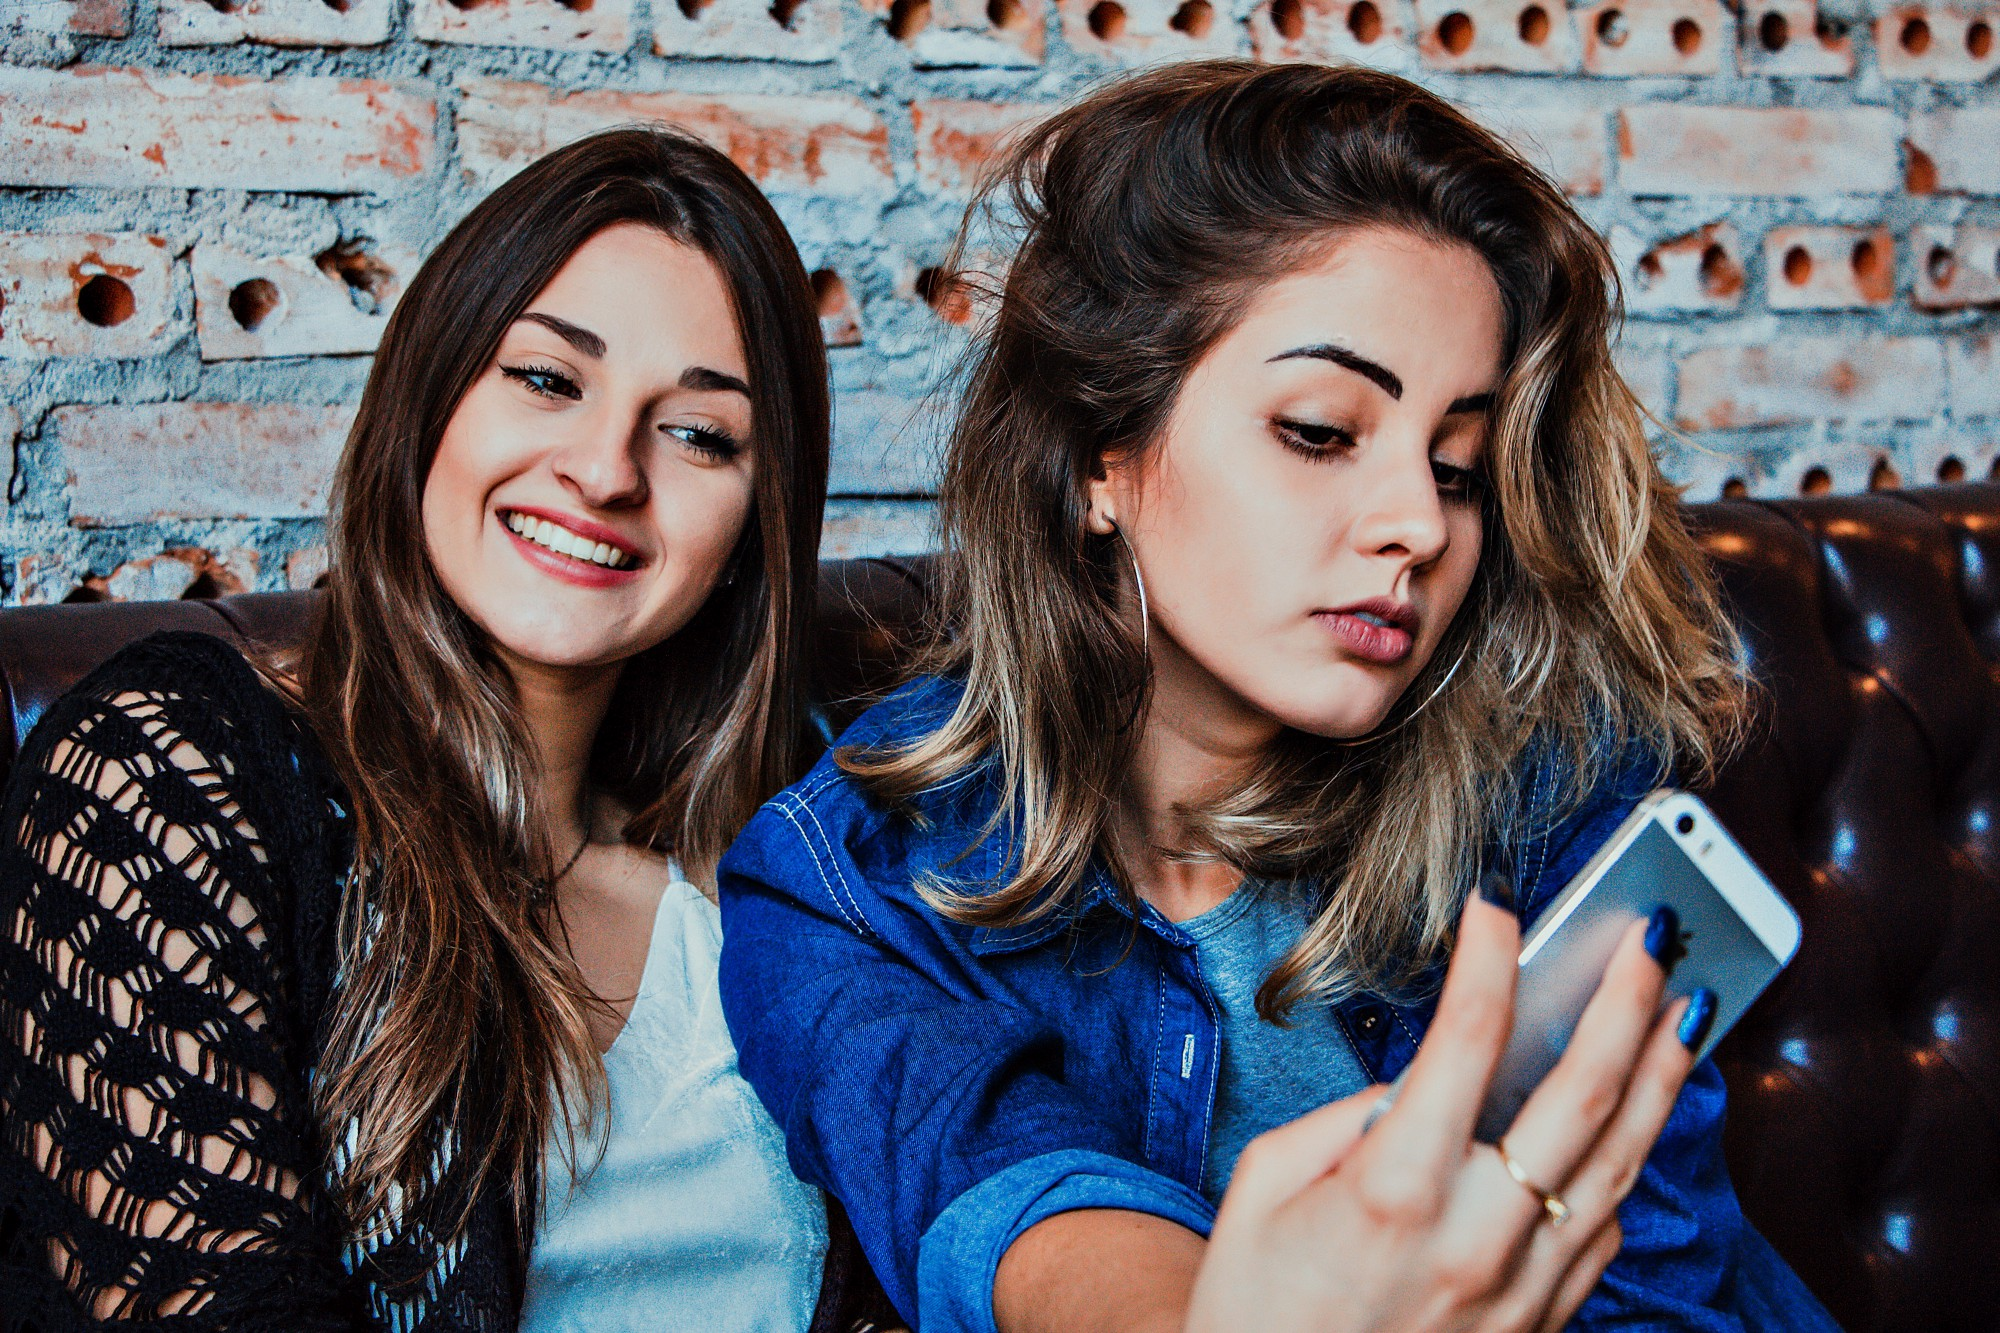 Two girls taking a selfie together. One smiling, one looking sly.